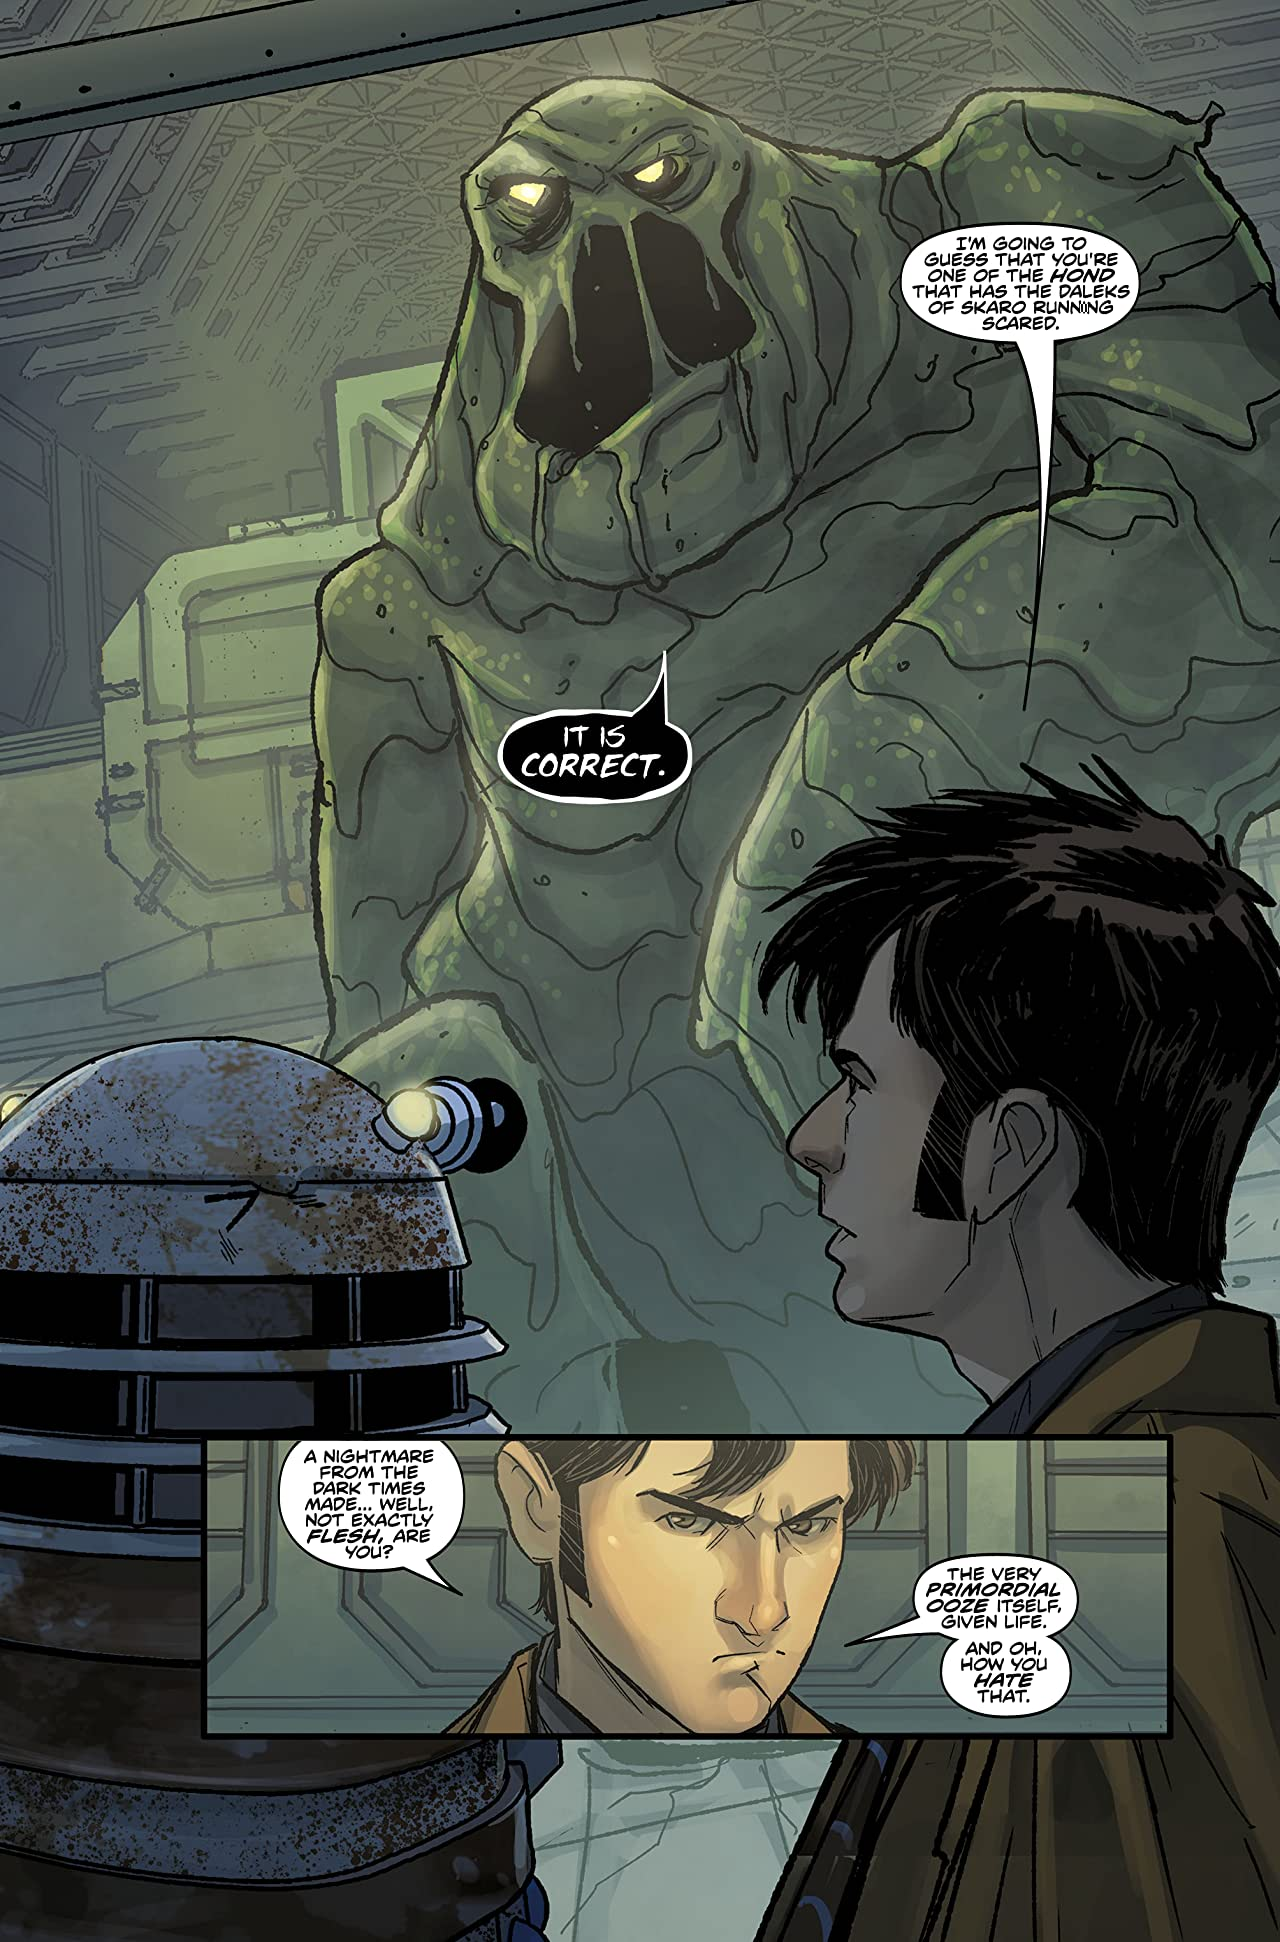 Doctor Who: Time Lord Victorious #2